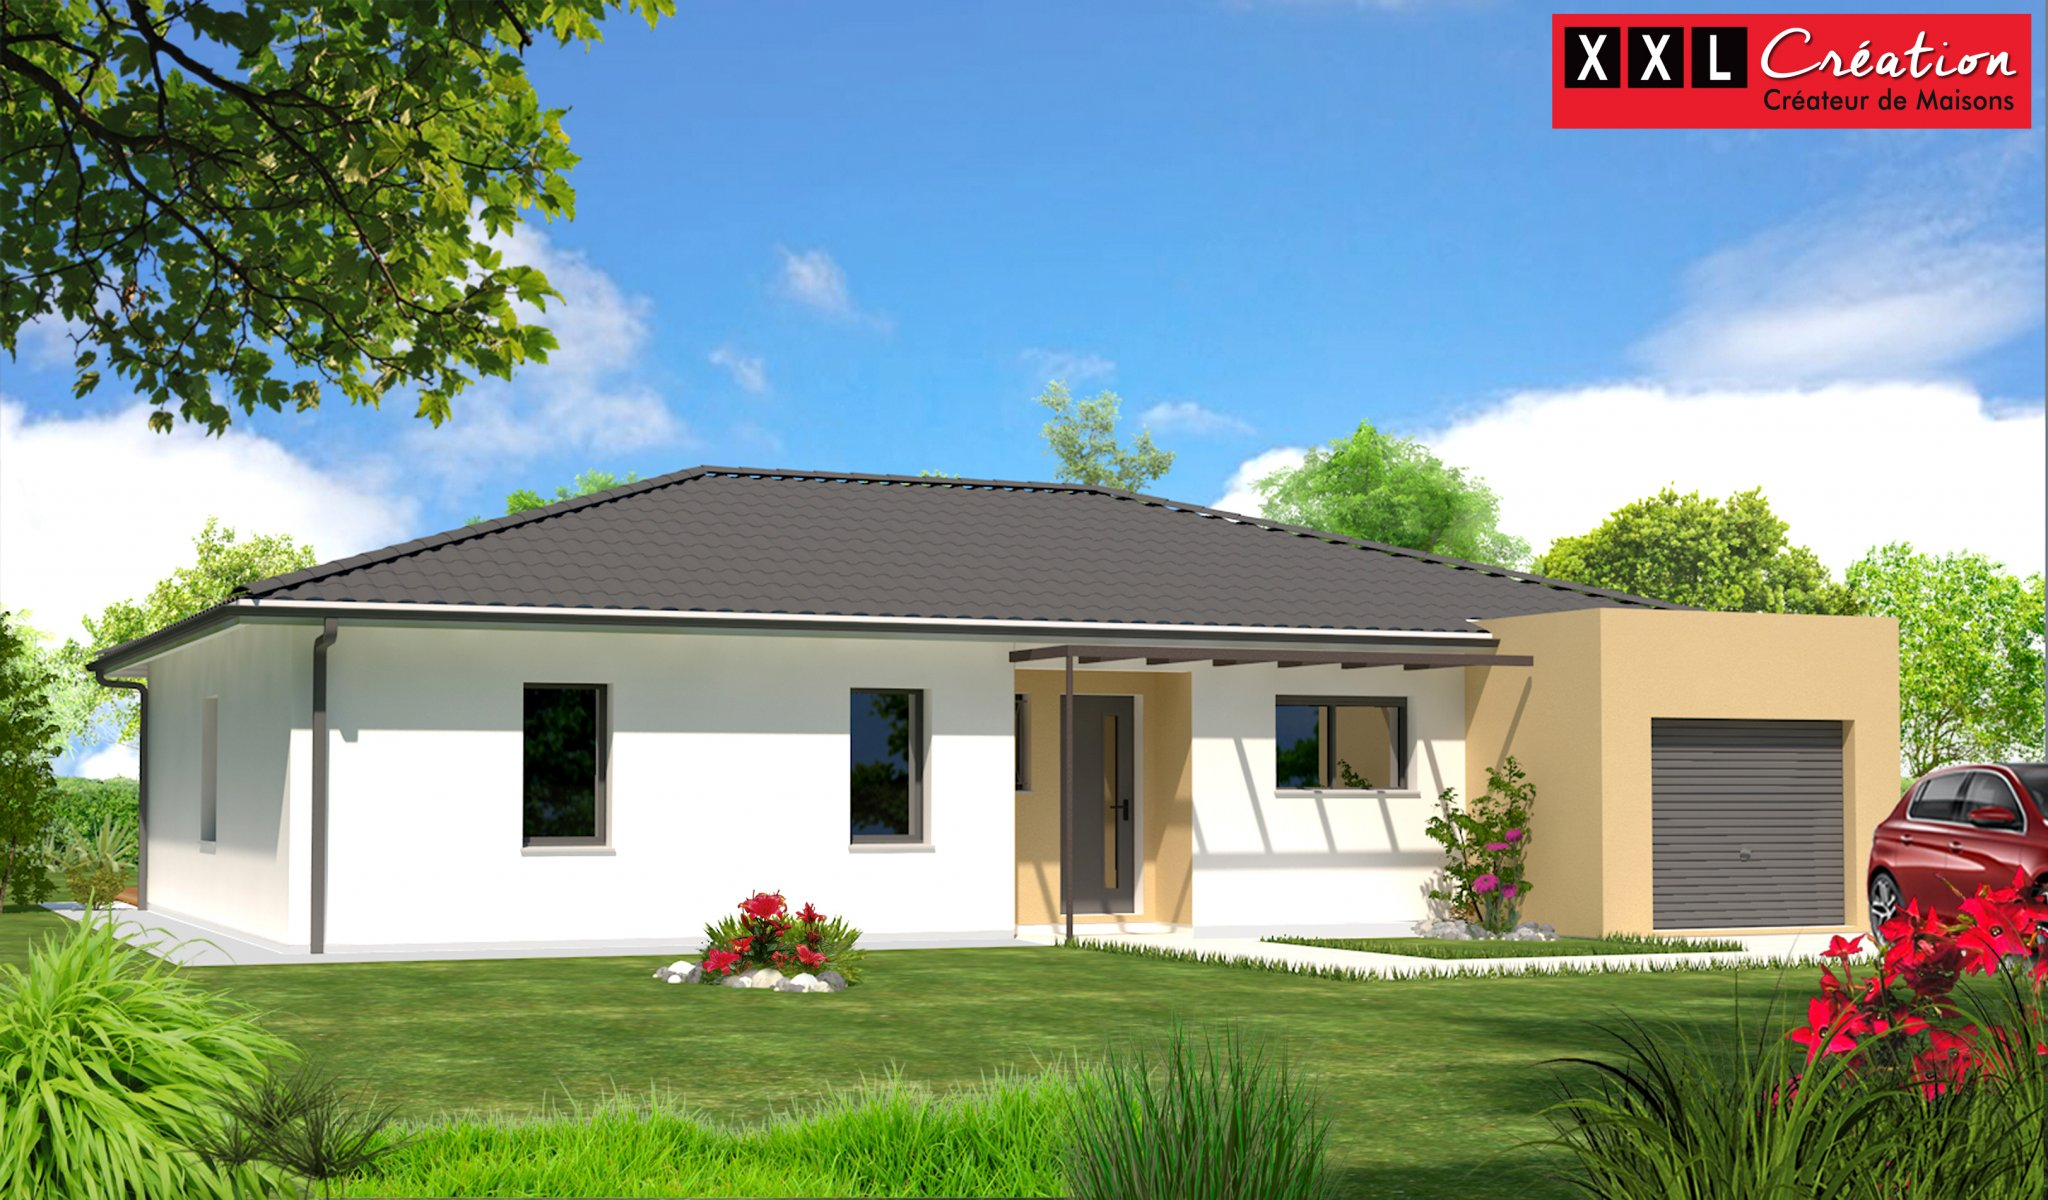 Maisons du constructeur XXL CREATION • 80 m² • TOULOUGES